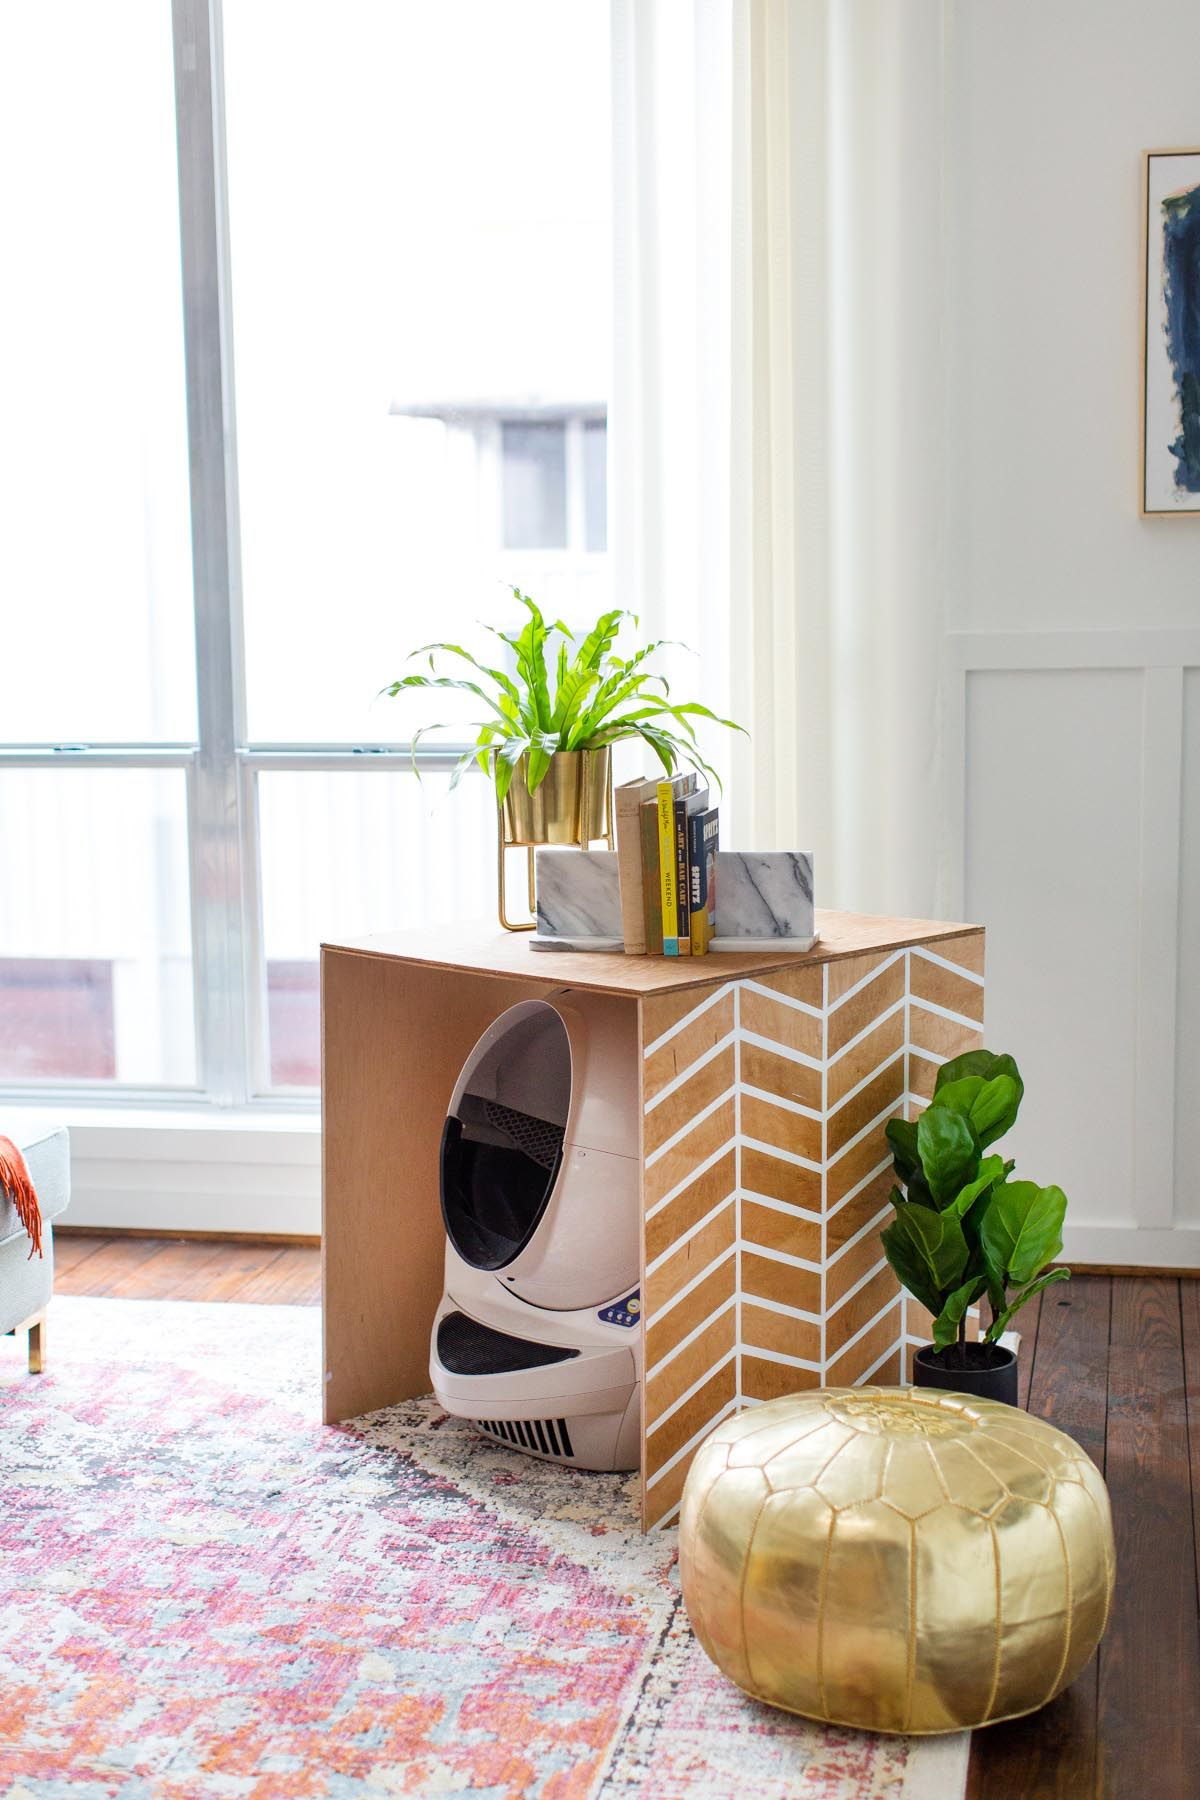 Patterned Diy Litter Box Cover By Top Houston Blogger Ashley Rose Of Sugar Cloth